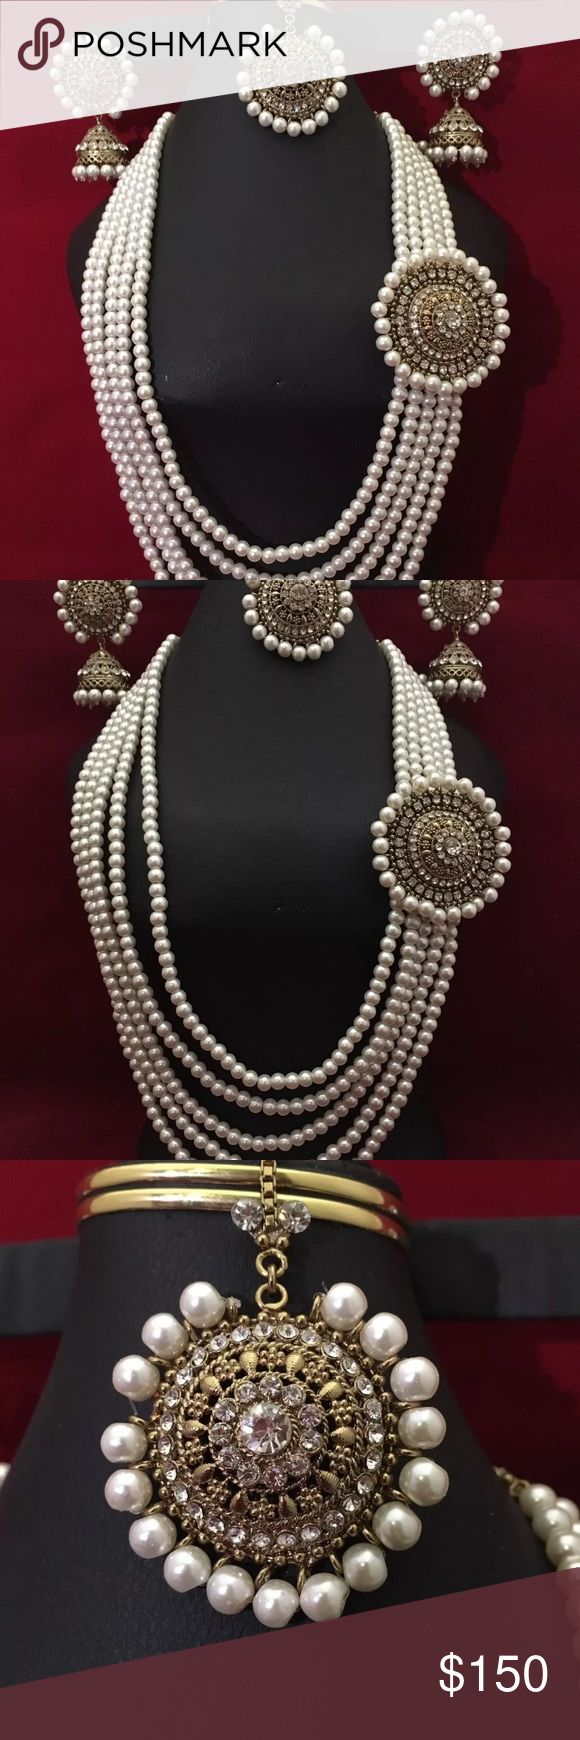 Nwot Mughal Indian jewelry set New Mughal style pearl beads attached with rhinestones pendent . Set include earrings , matha Tikka and long necklace Earrings are jhumki style Picture took in different lights to show you the exact colors . Very beautiful in front .  Please ask any question before bidding all sales are final no return accepted.  Thank you Jewelry Necklaces